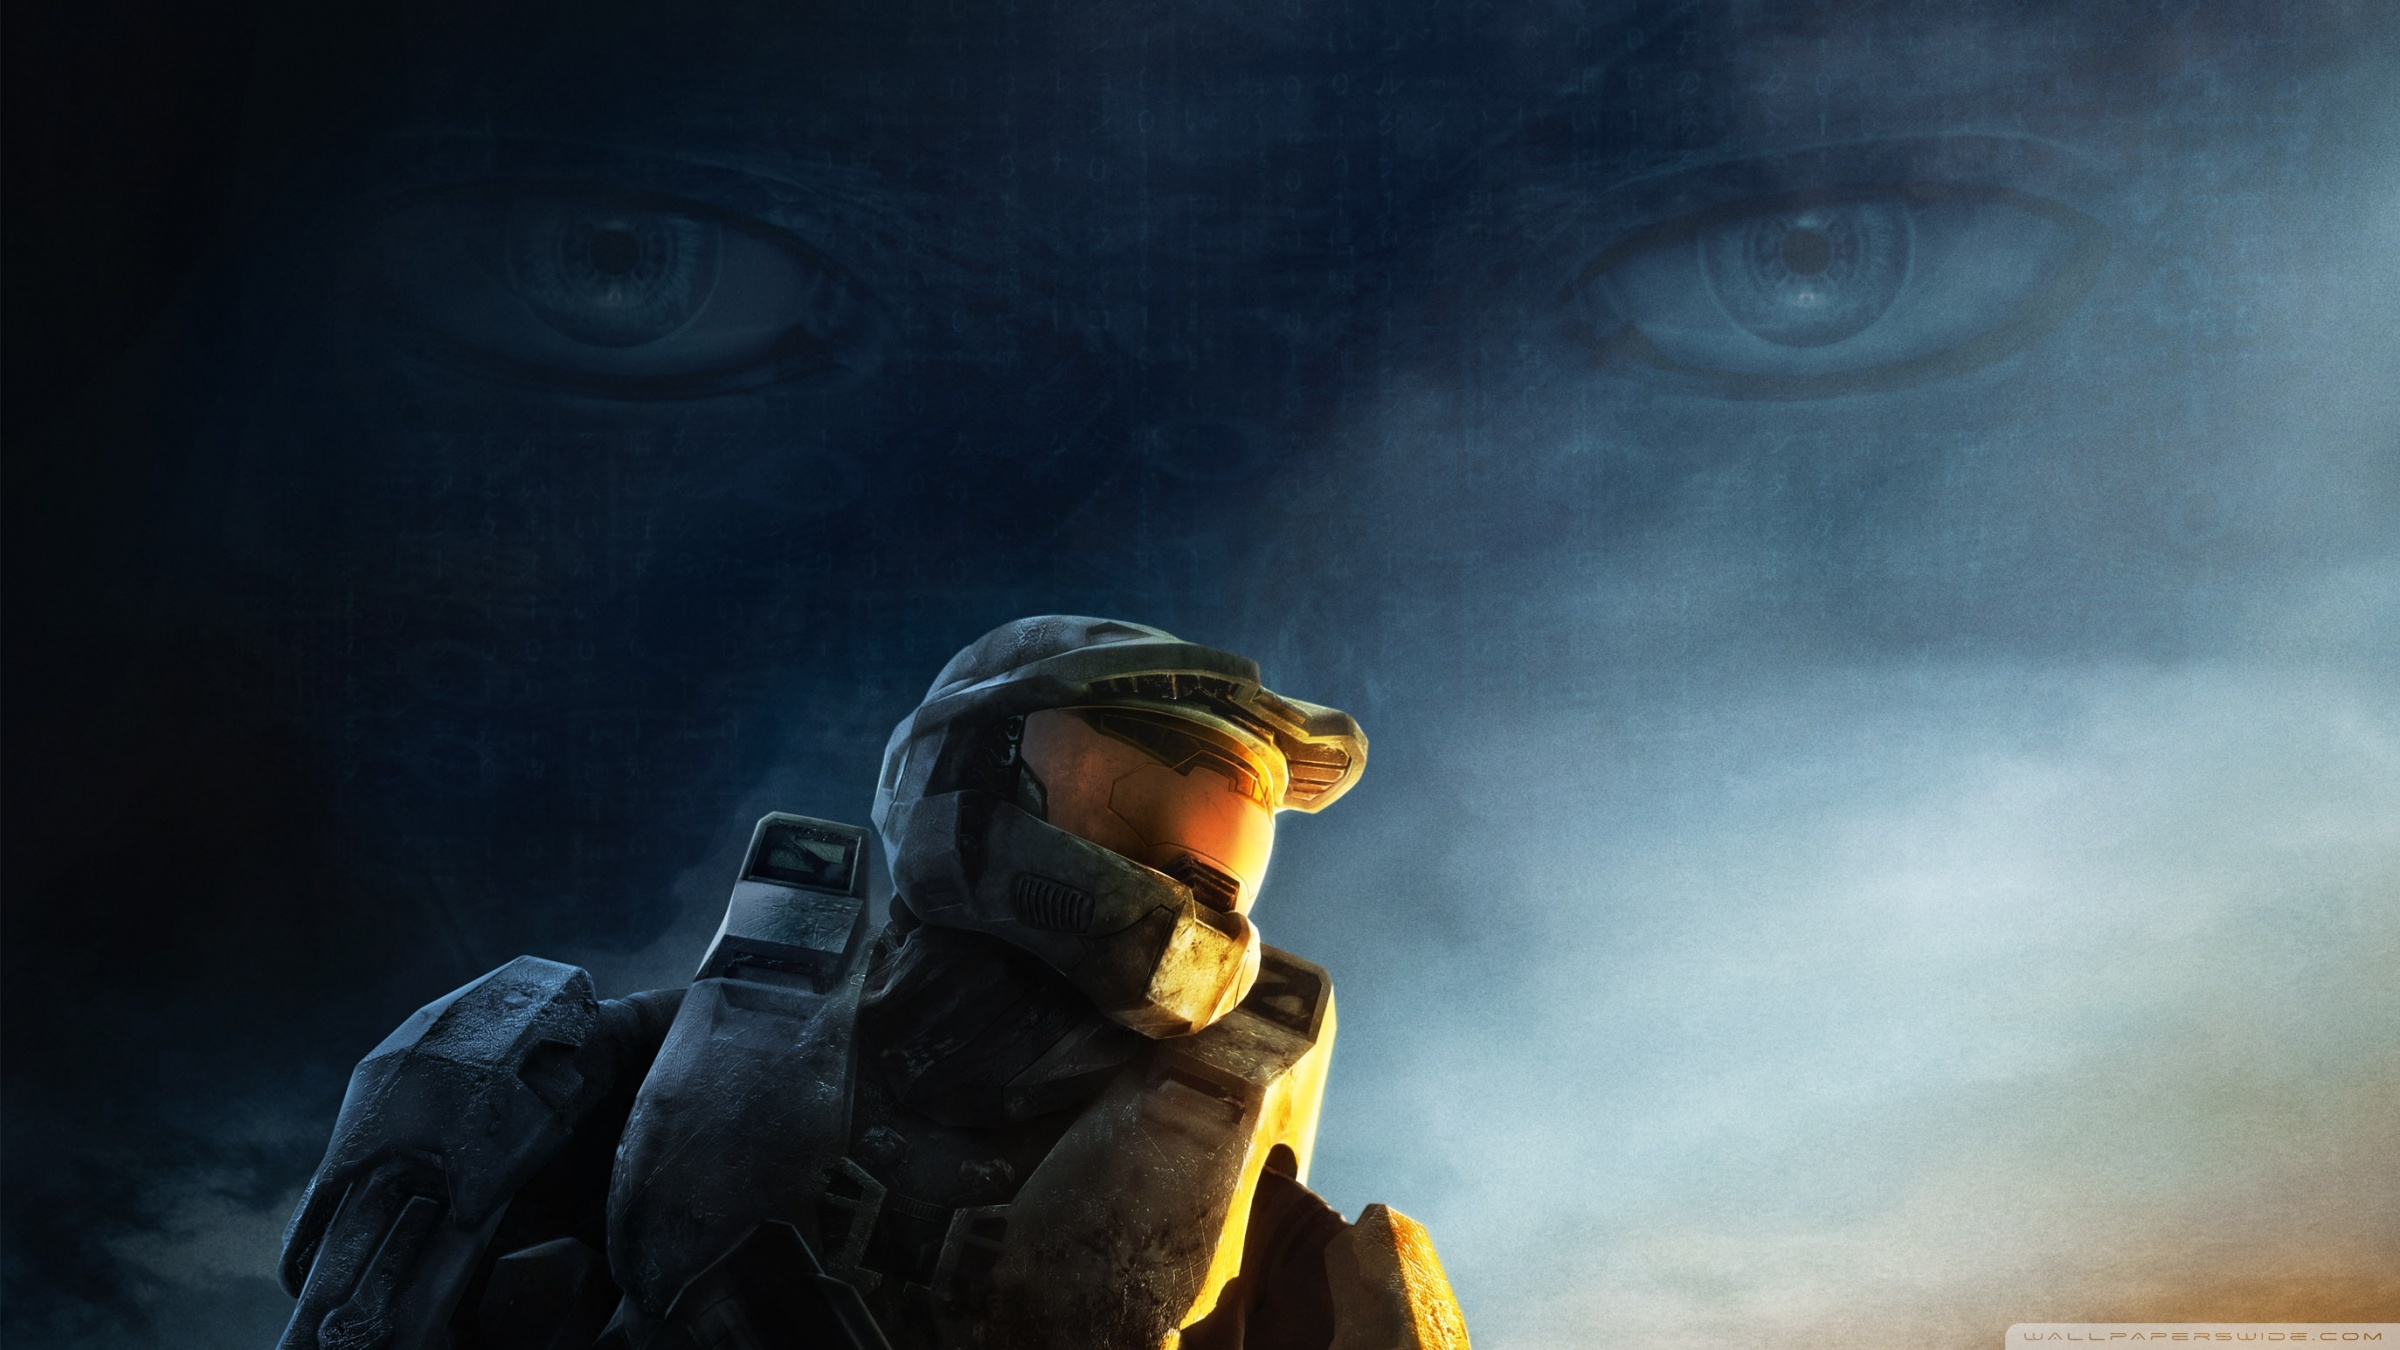 Halo Game Master Chief 4K HD Desktop Wallpaper for 4K Ultra HD 2400x1350